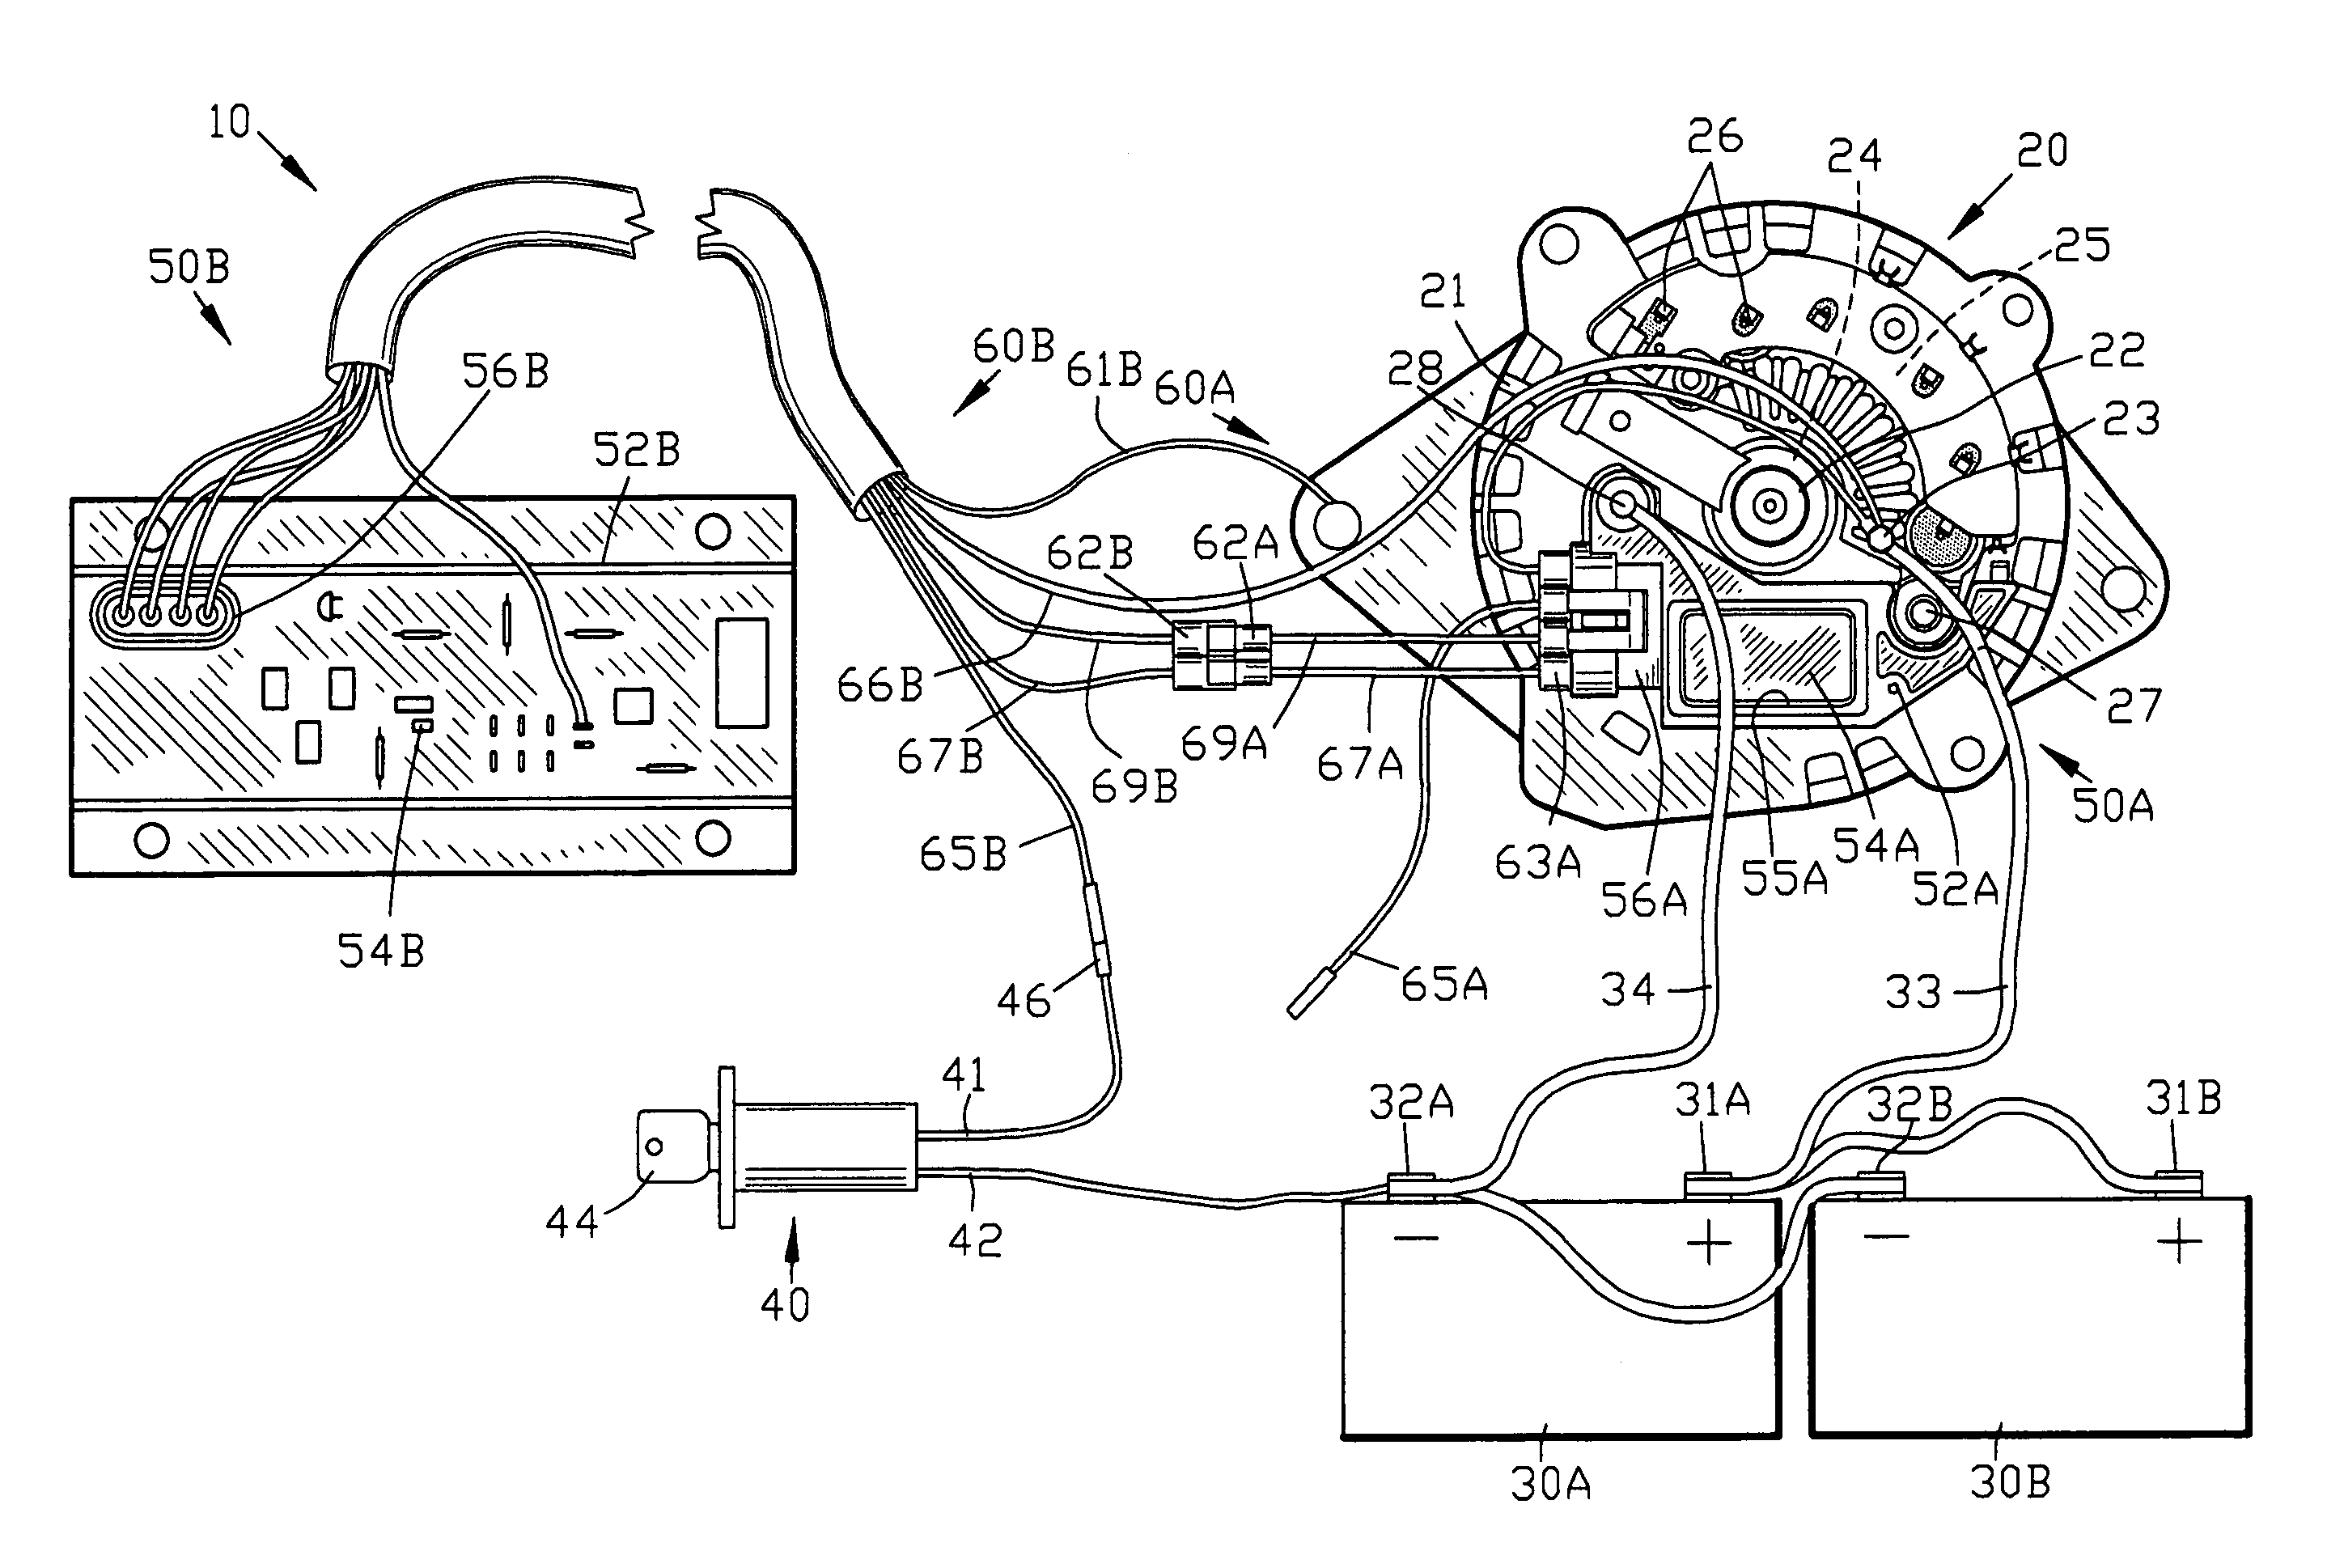 US07245111 20070717 D00000 patent us7245111 regulator system for alternator google patents valeo alternator regulator wiring diagram at sewacar.co